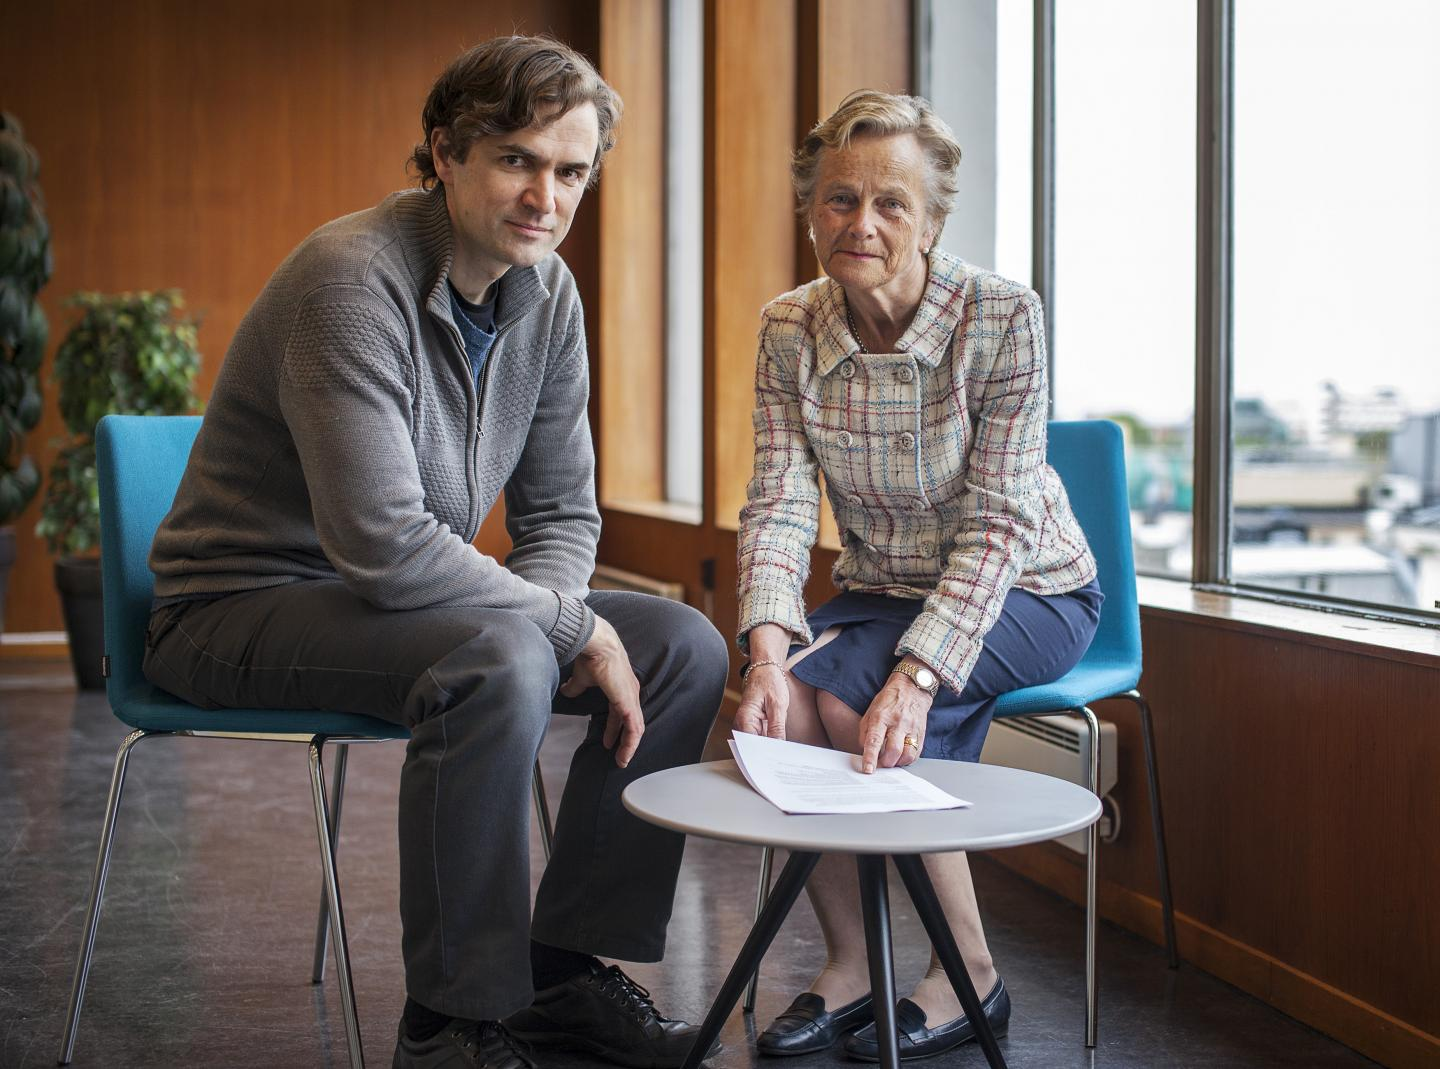 Professor Kjersti Fløttum, University of Bergen, and Senior Researcher Endre Tvinnereim, Uni Research, have asked 2,000 Norwegians open questions about climate change. Image: Ingvild Festervoll Melien